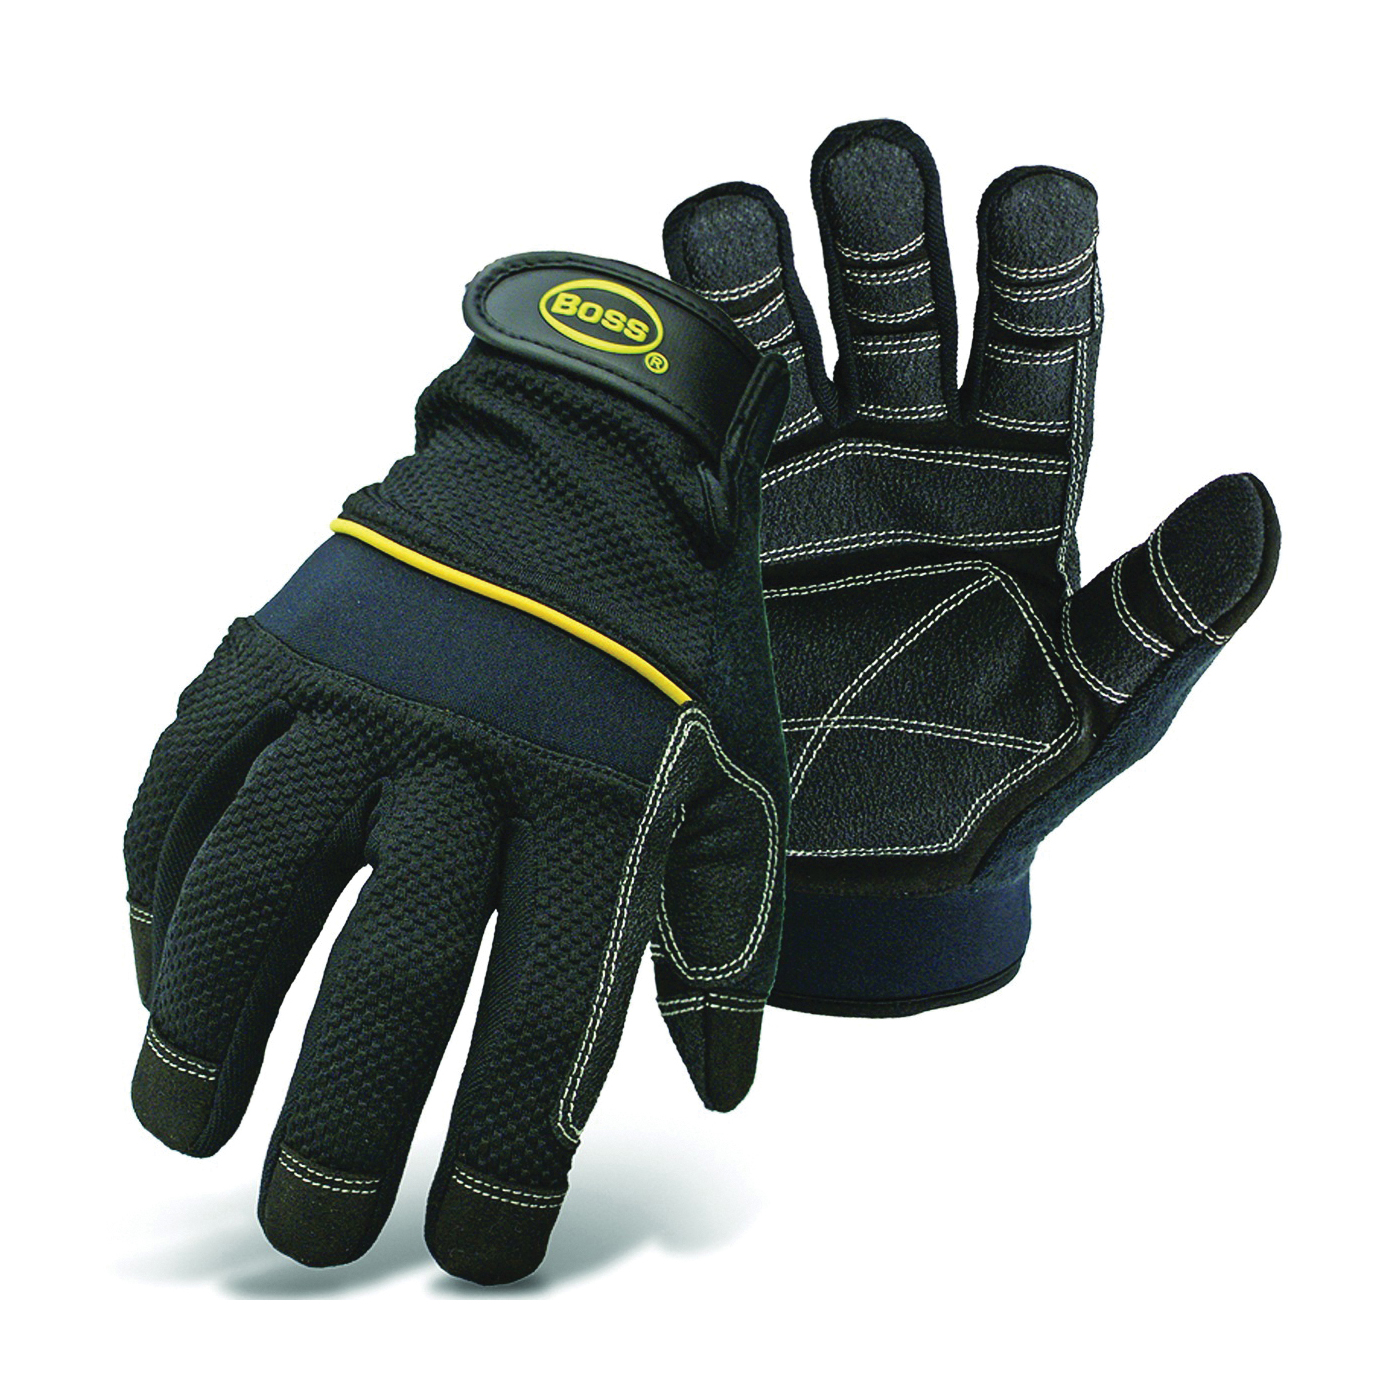 Picture of BOSS 5202L Multi-Purpose Utility Gloves, L, Wing Thumb, Wrist Strap Cuff, PVC/Synthetic Leather